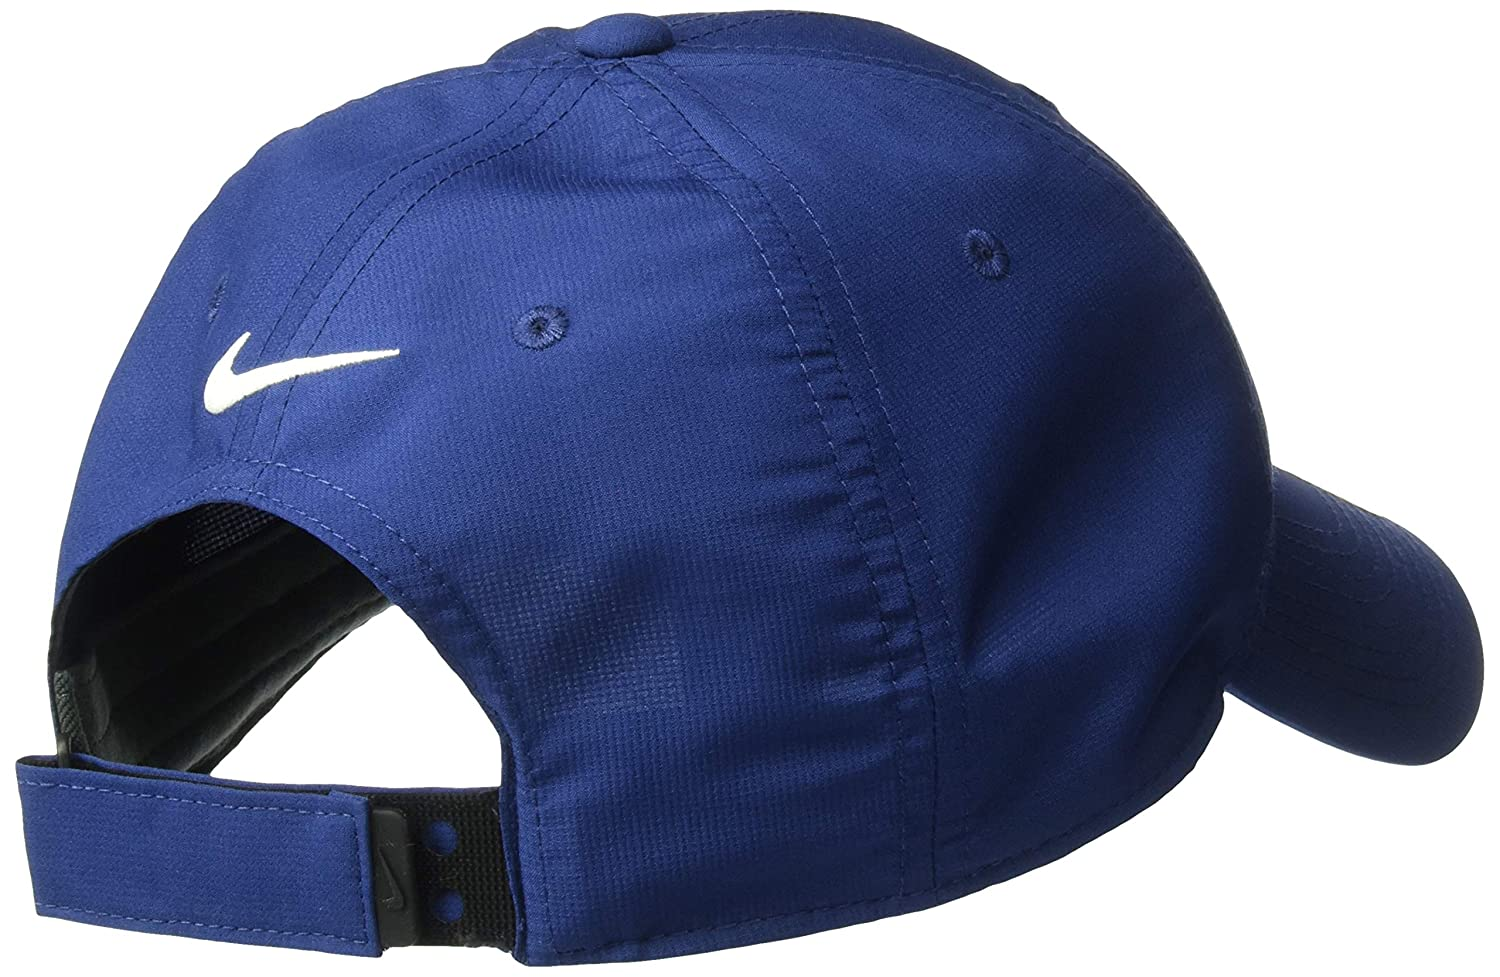 28a45833 Amazon.com: Nike Unisex Legacy Golf Cap, Adjustable & Lightweight Hat for  Men and Women, Blue Void/Anthracite/Sail: Sports & Outdoors